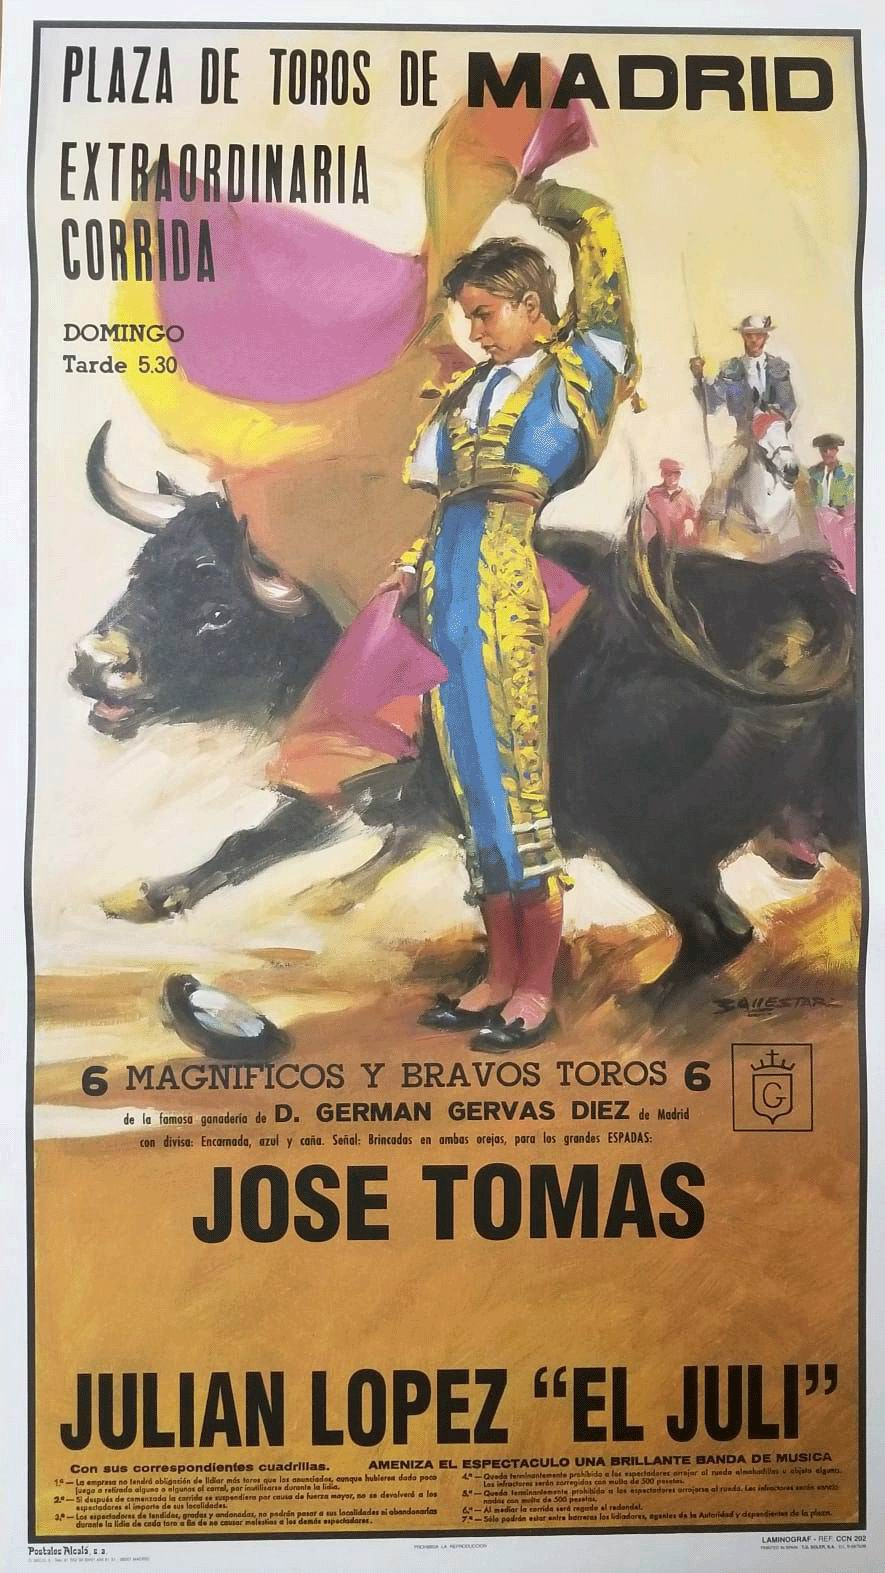 Poster of the Monumental Bullfighting of Madrid. Bullfighters Jose Tomas y Julian López